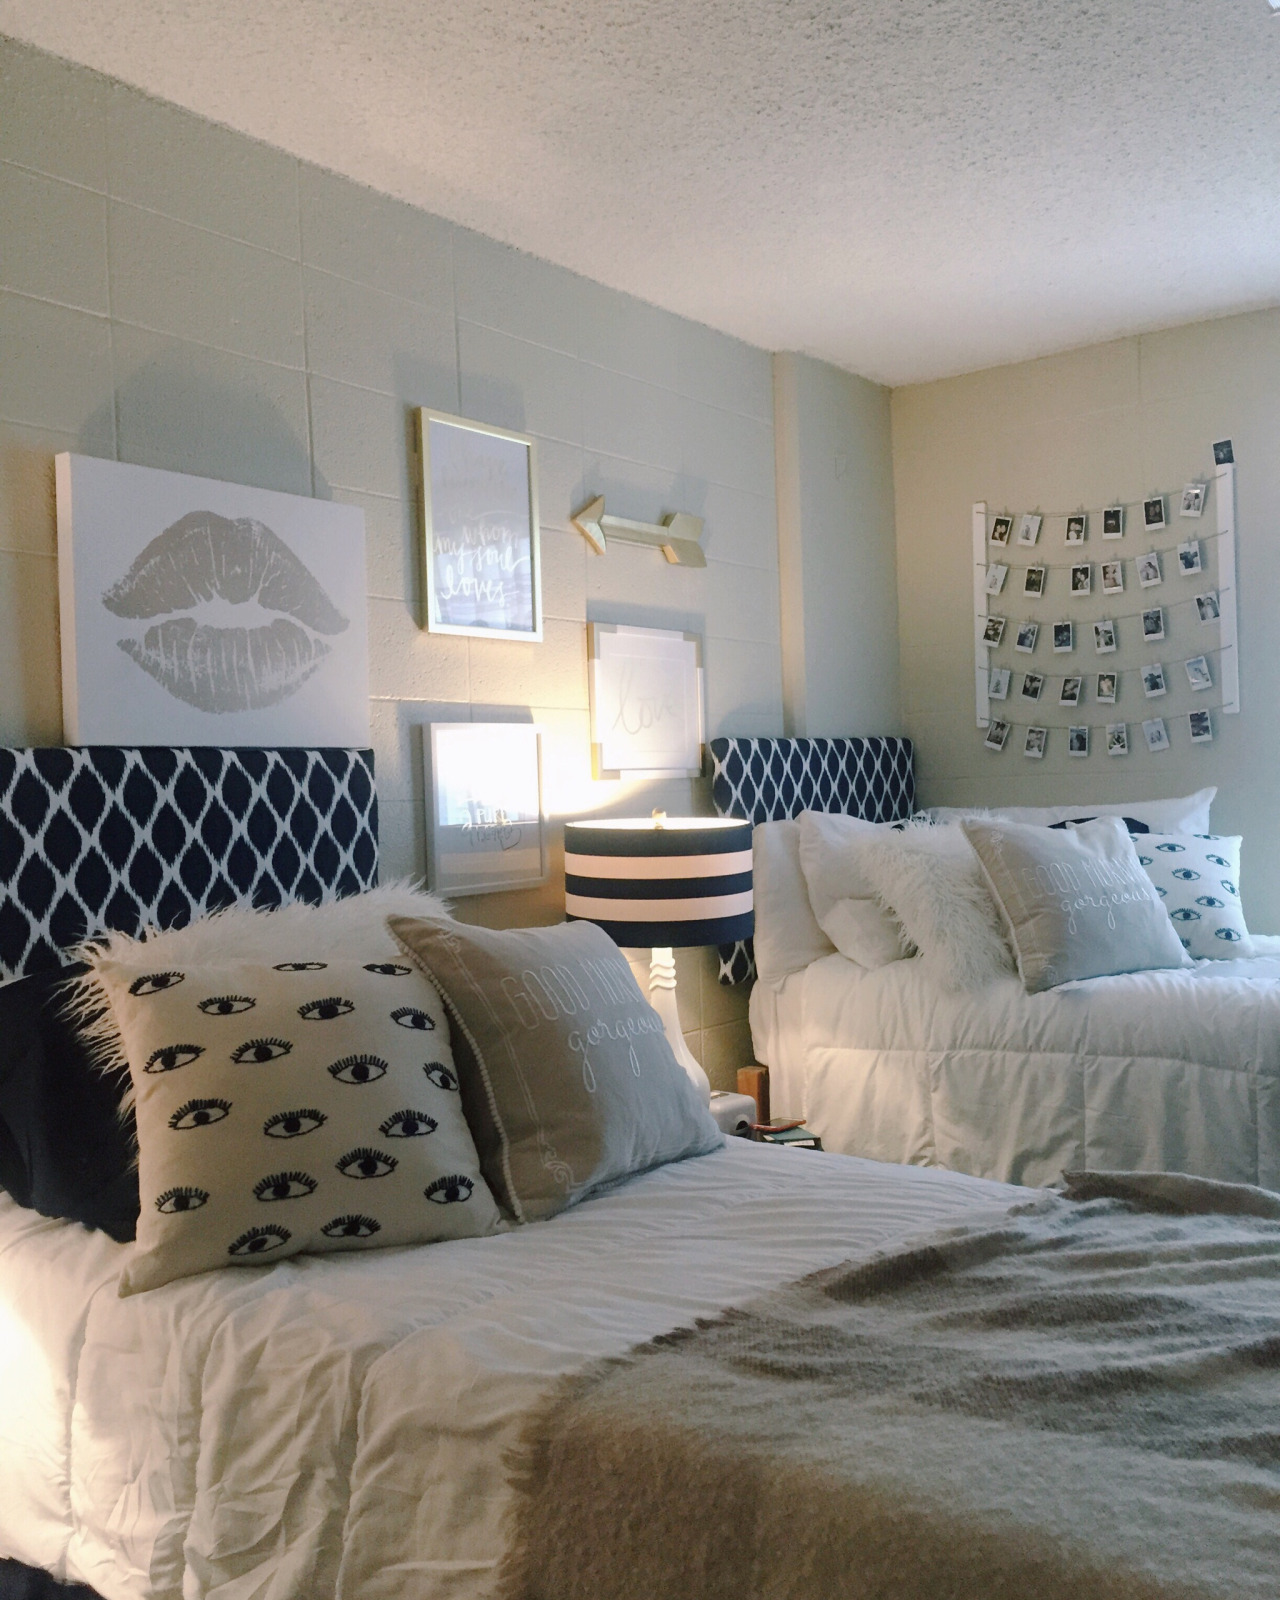 How To Decorate Your Dorm Without Damaging Your Walls | Havenly Hideaway